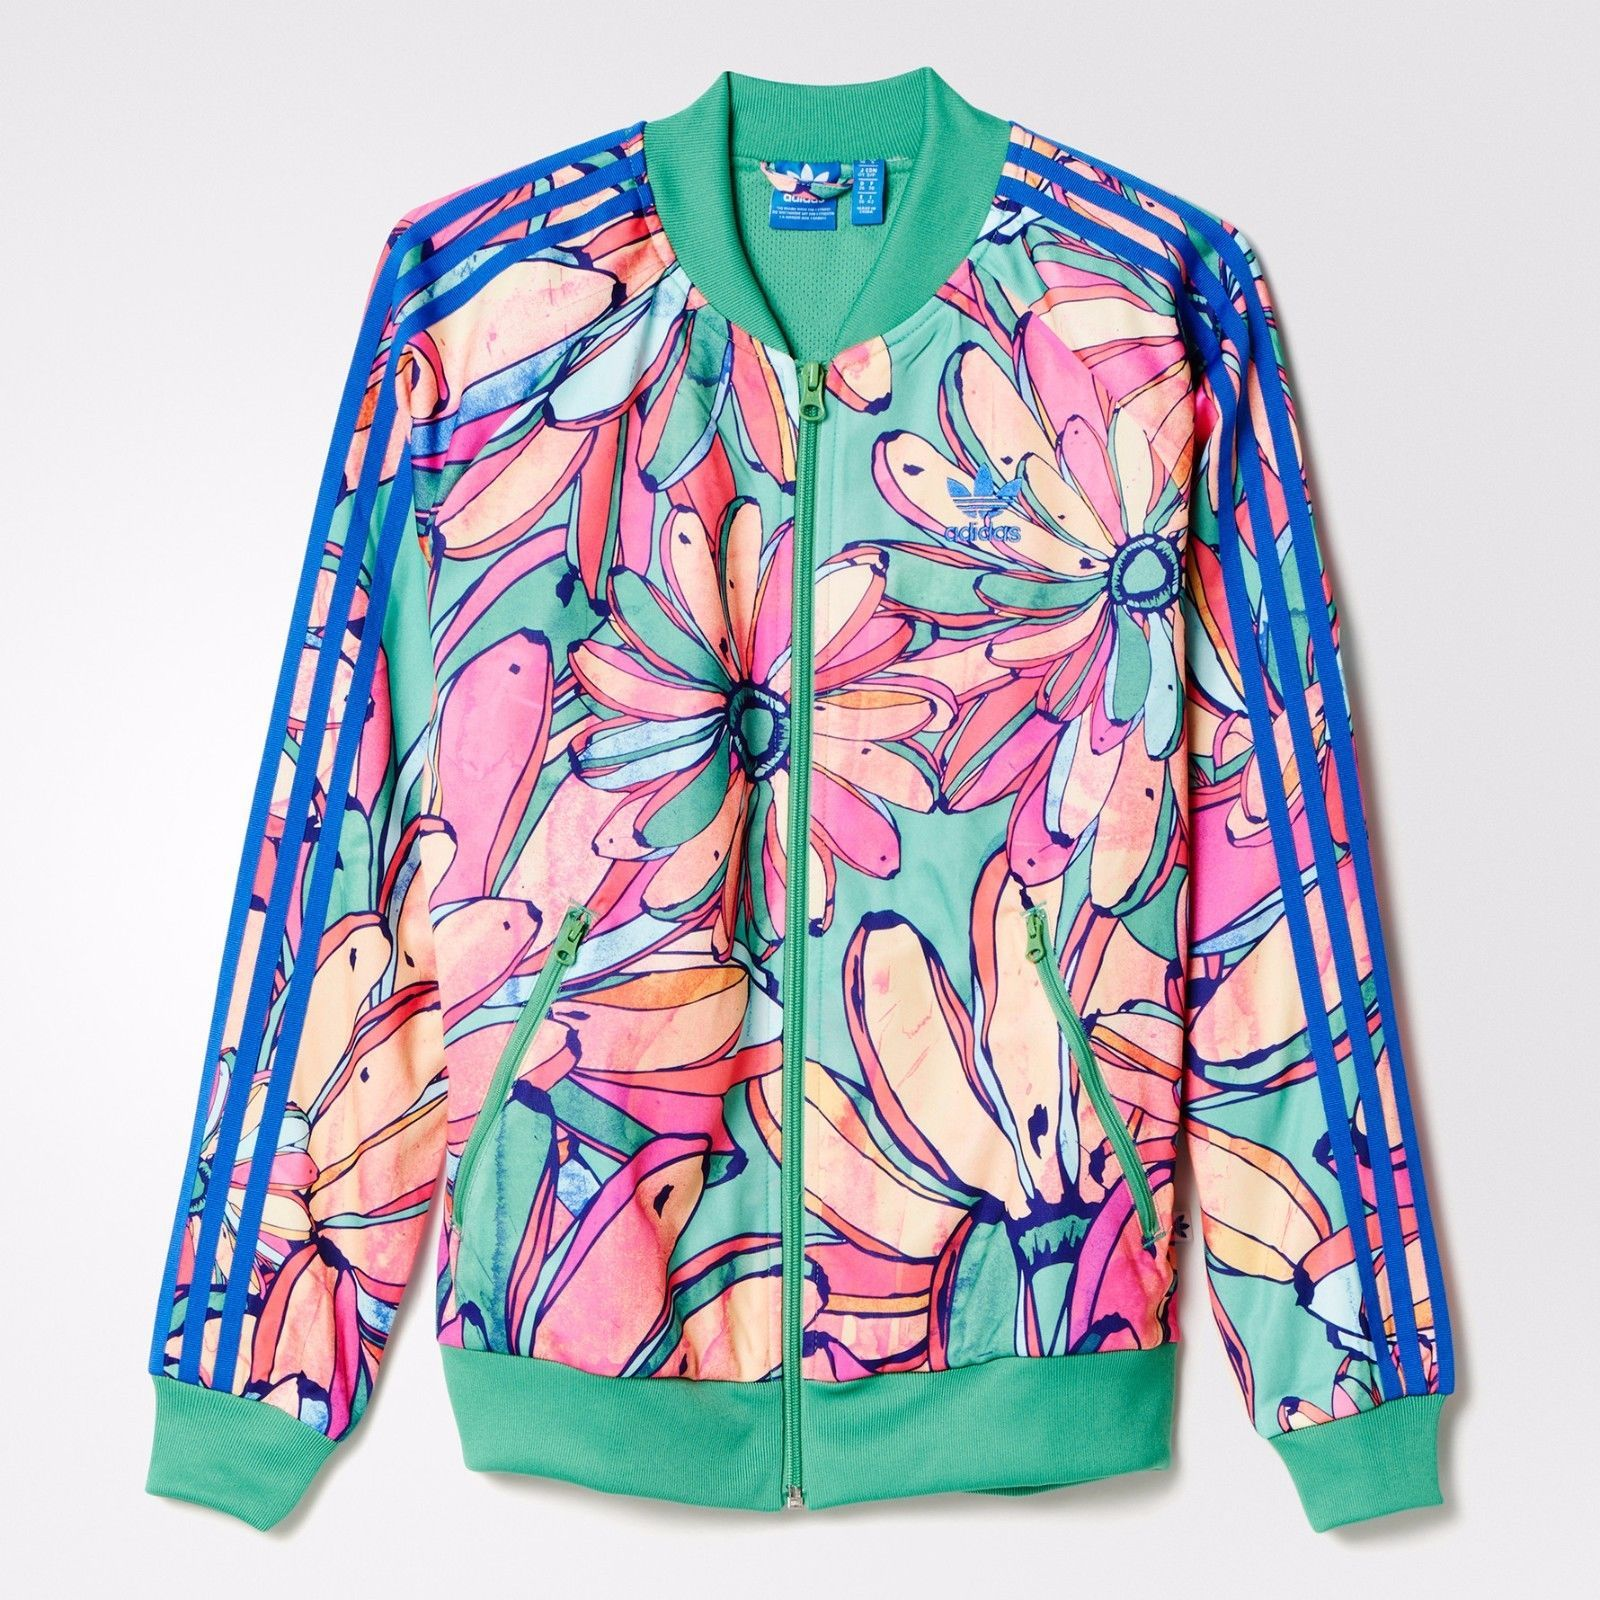 772eff57f28 Adidas Women'S Originals X Farm Bananas Supergirl Track Top Jacket Aj8122